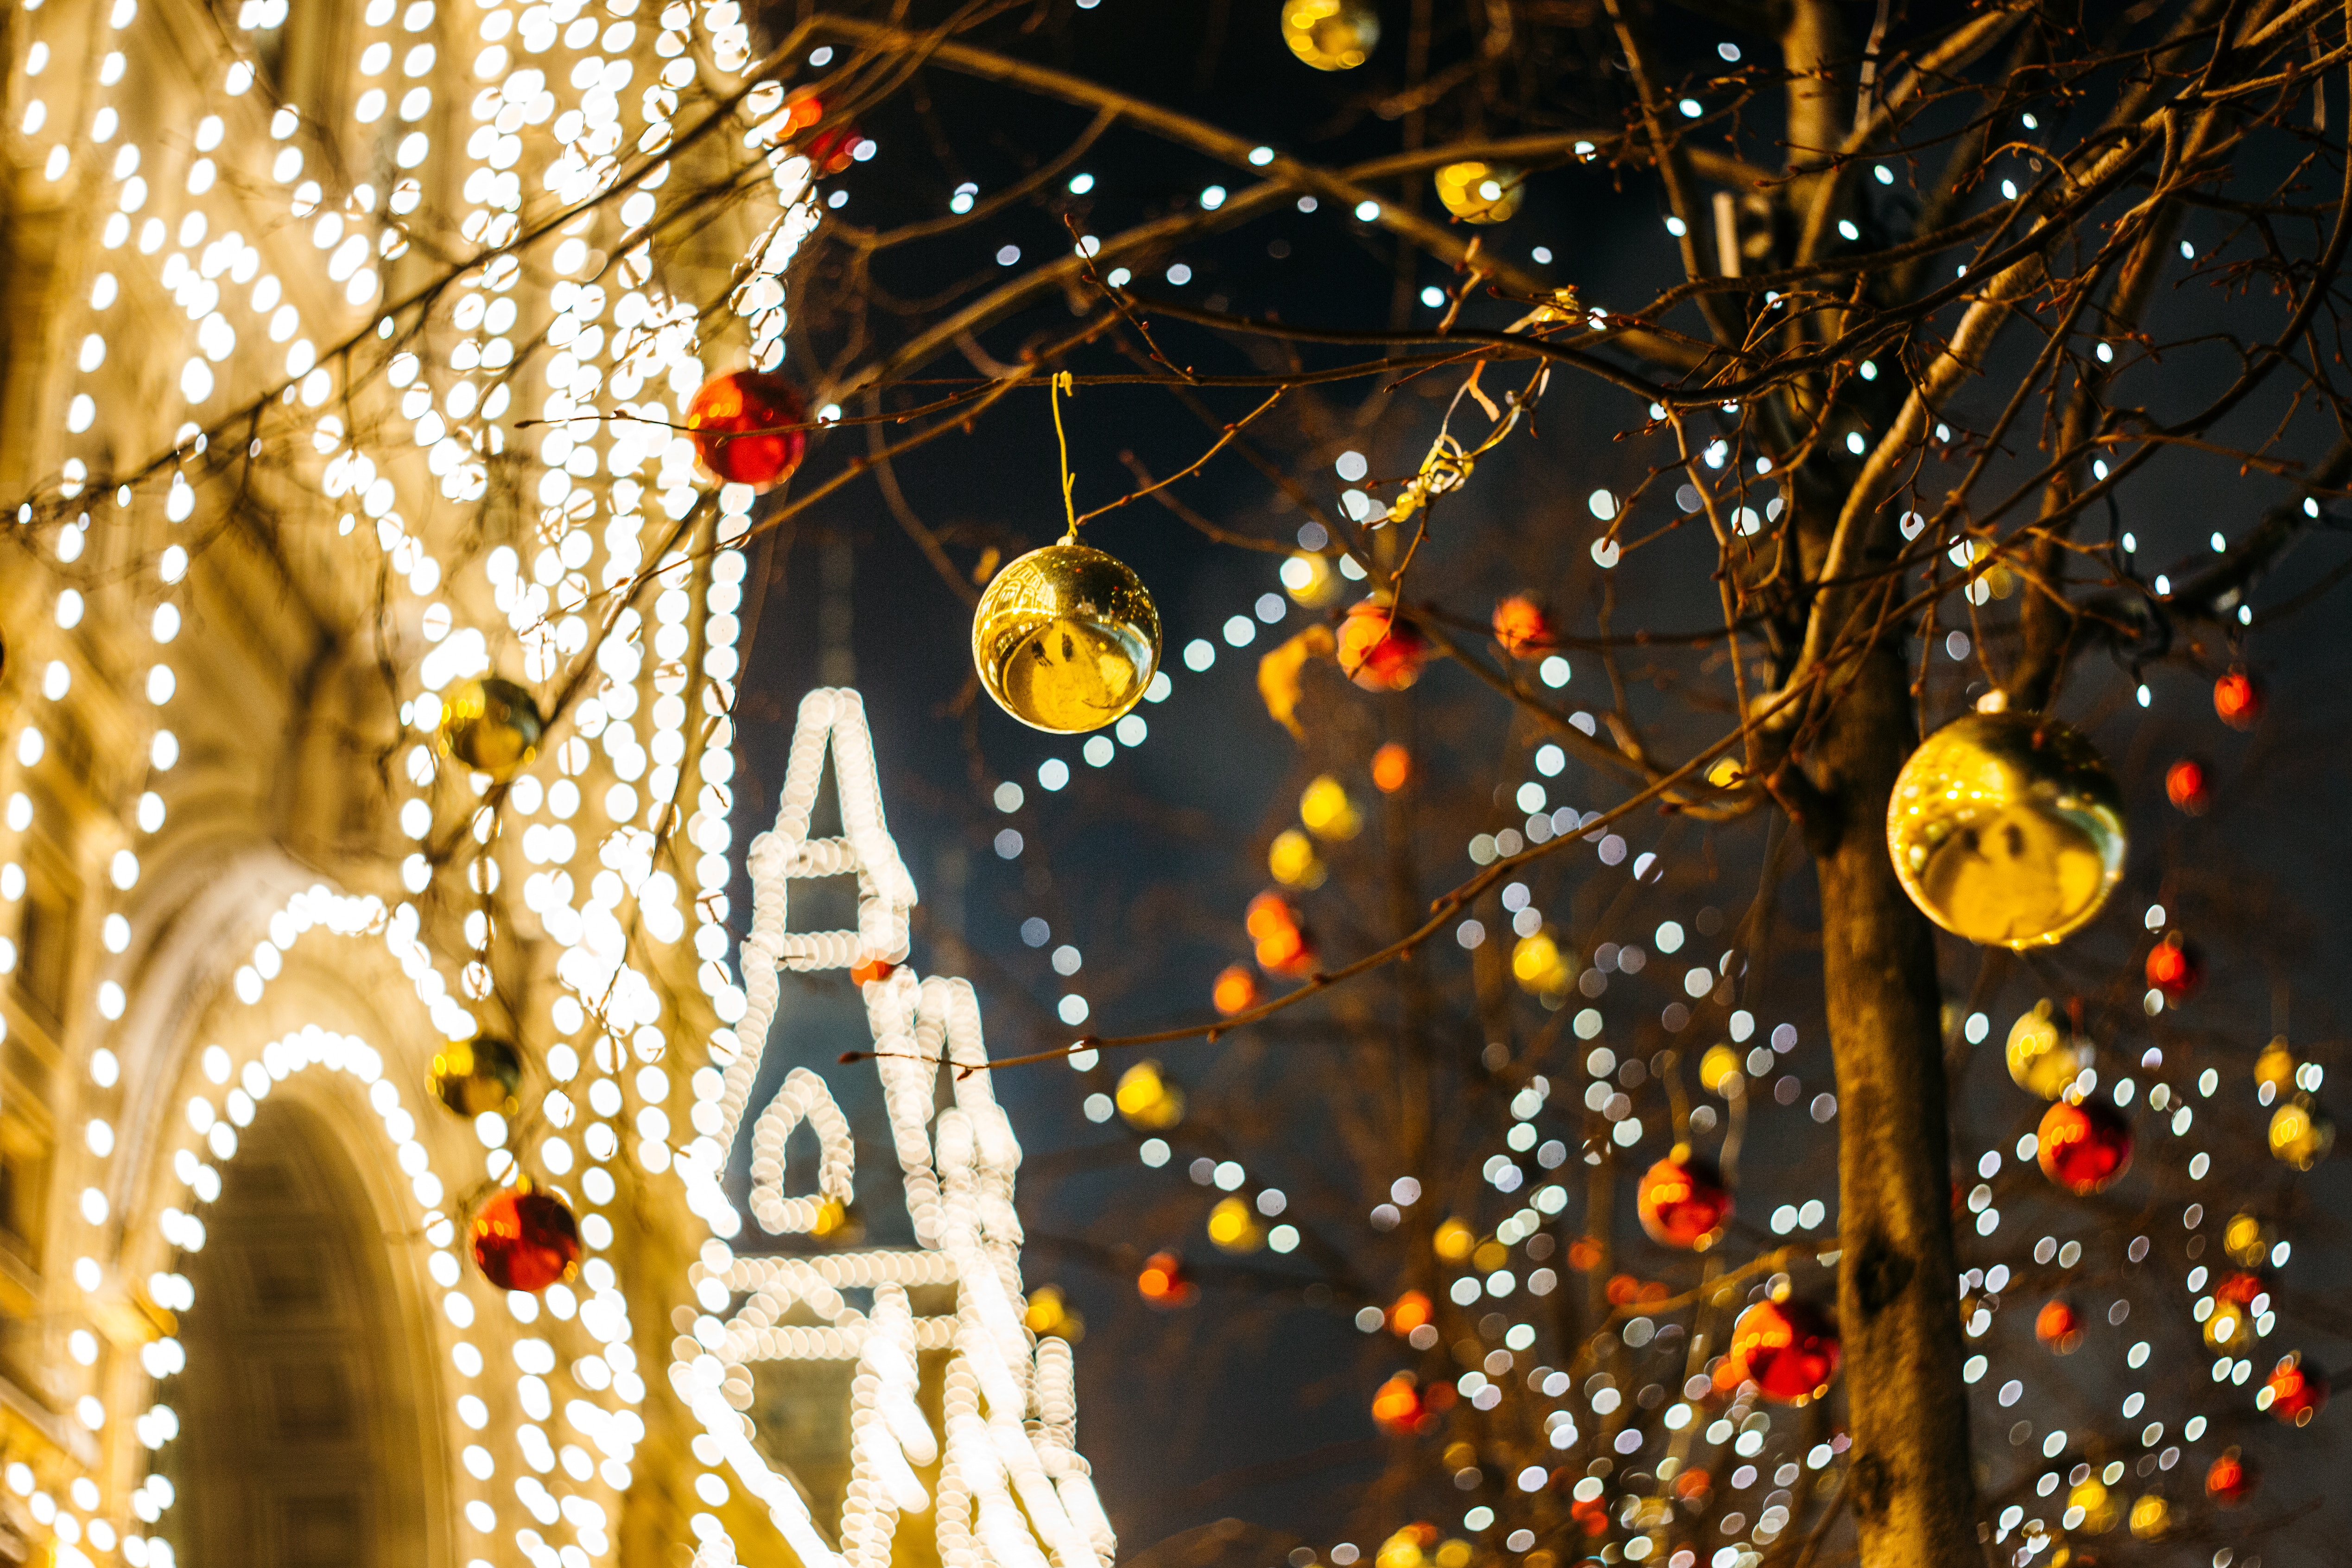 Image of Christmas lights and baubles